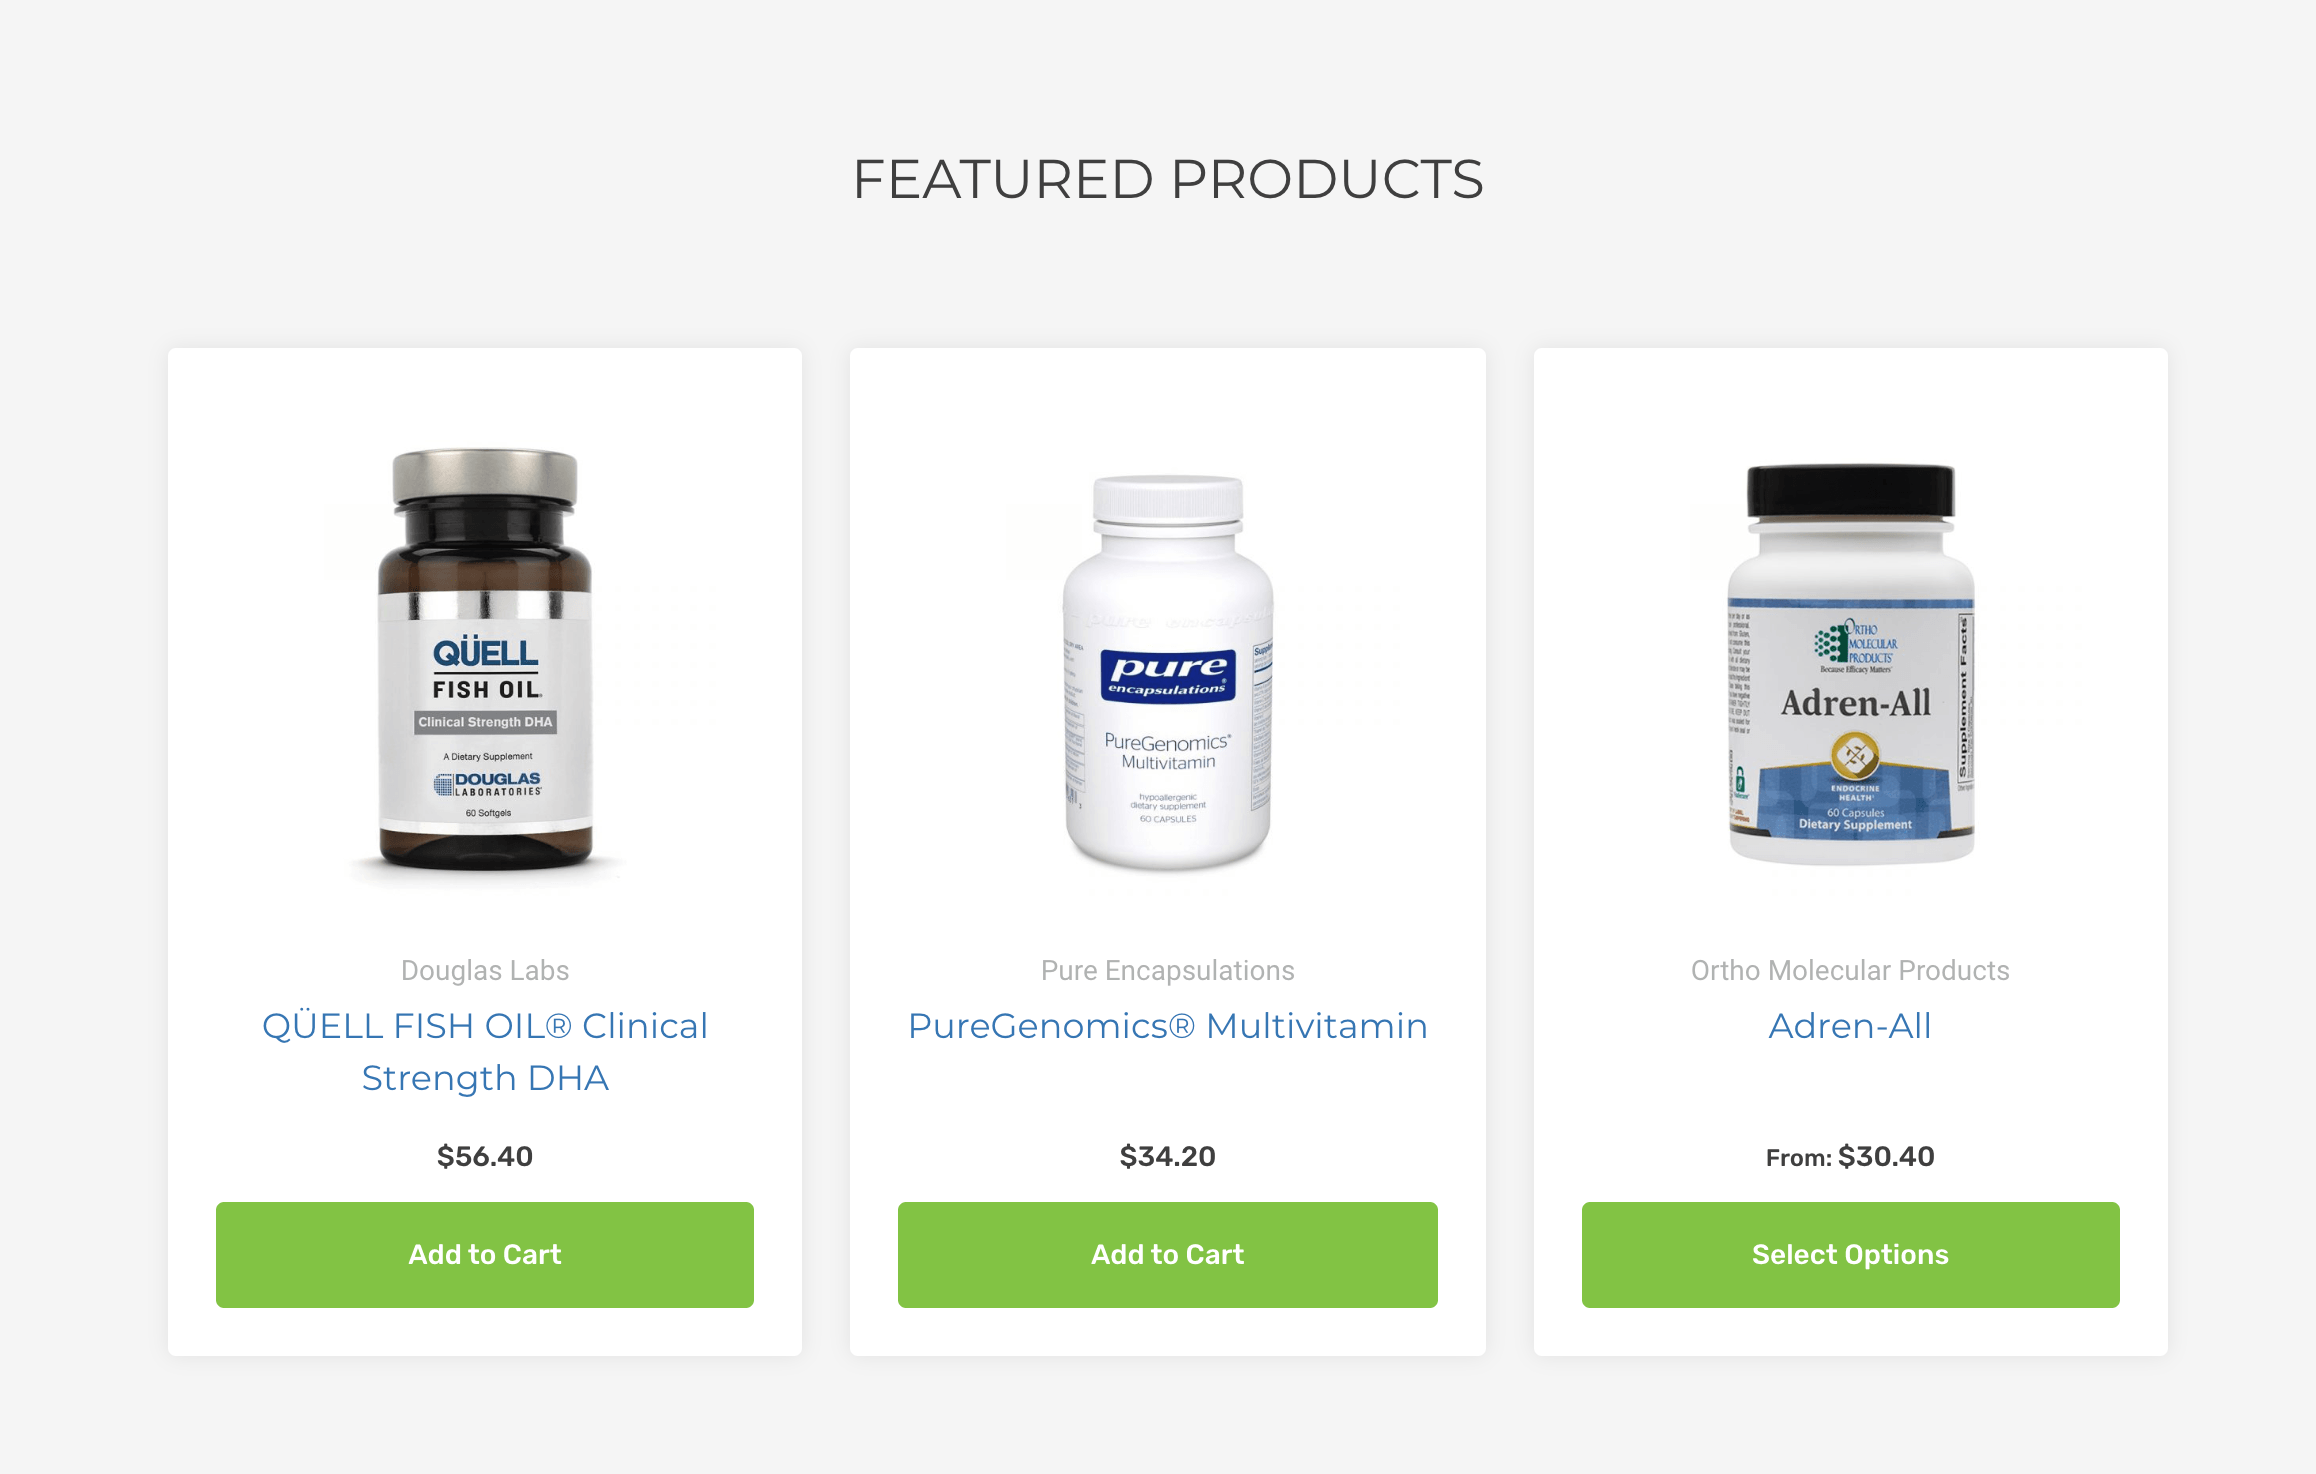 A screenshot of the featured products section on the homepage that includes three products